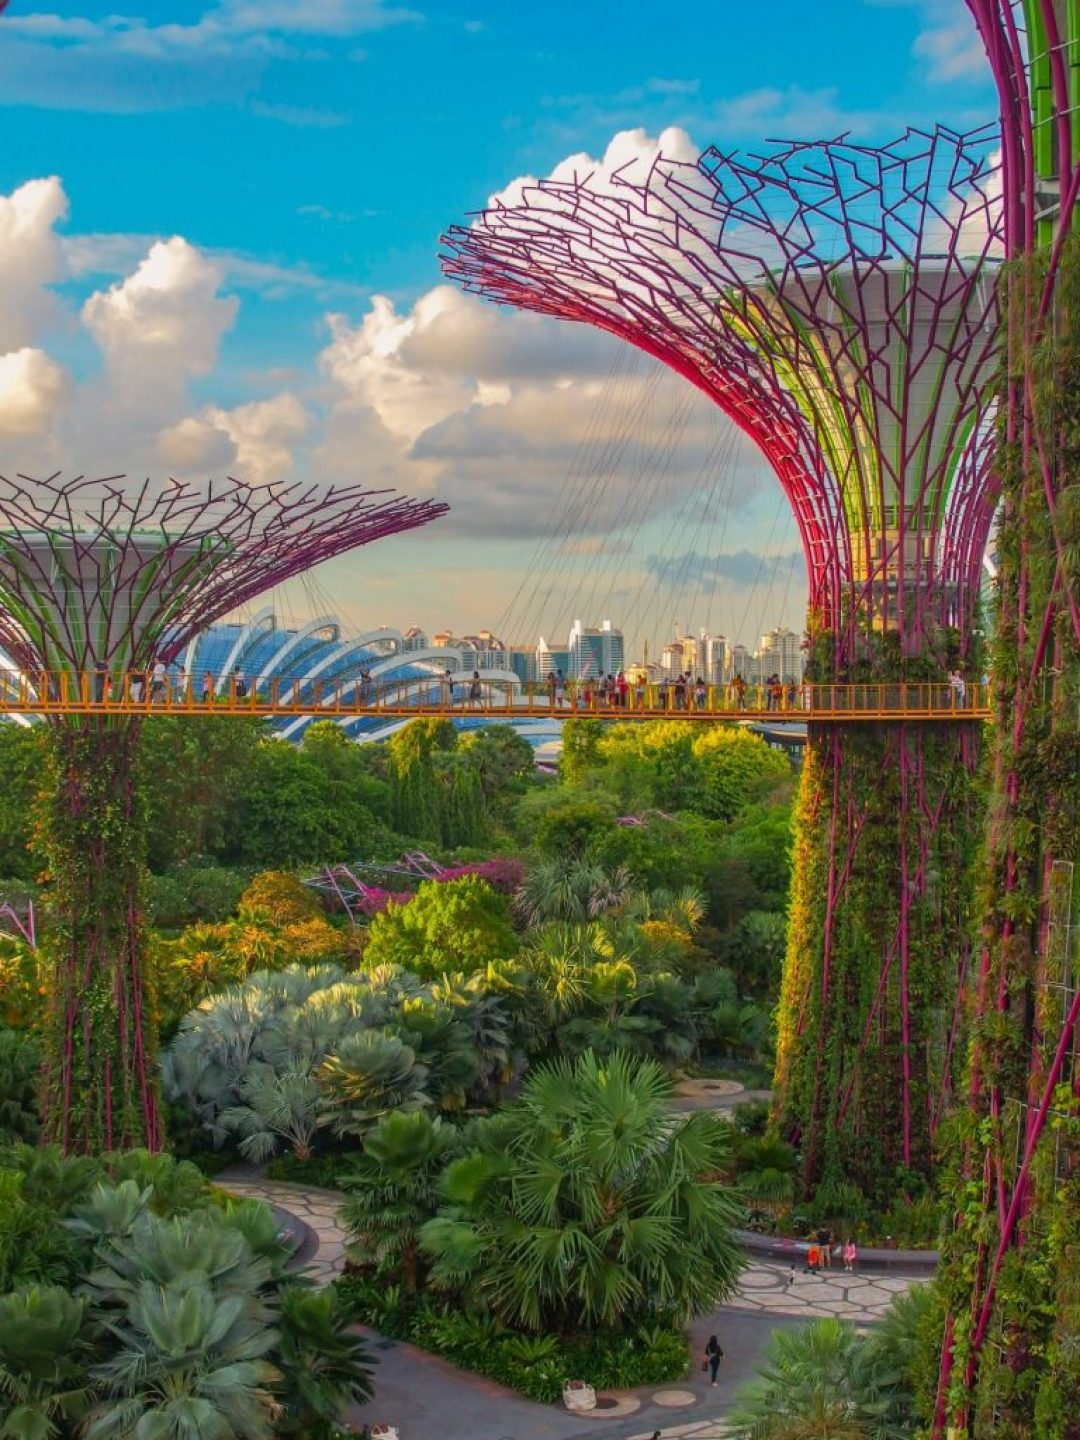 A full list of world capitals, including photos for each city. If you're looking for a list of capital cities around the world, this is it! #Geography #Travel